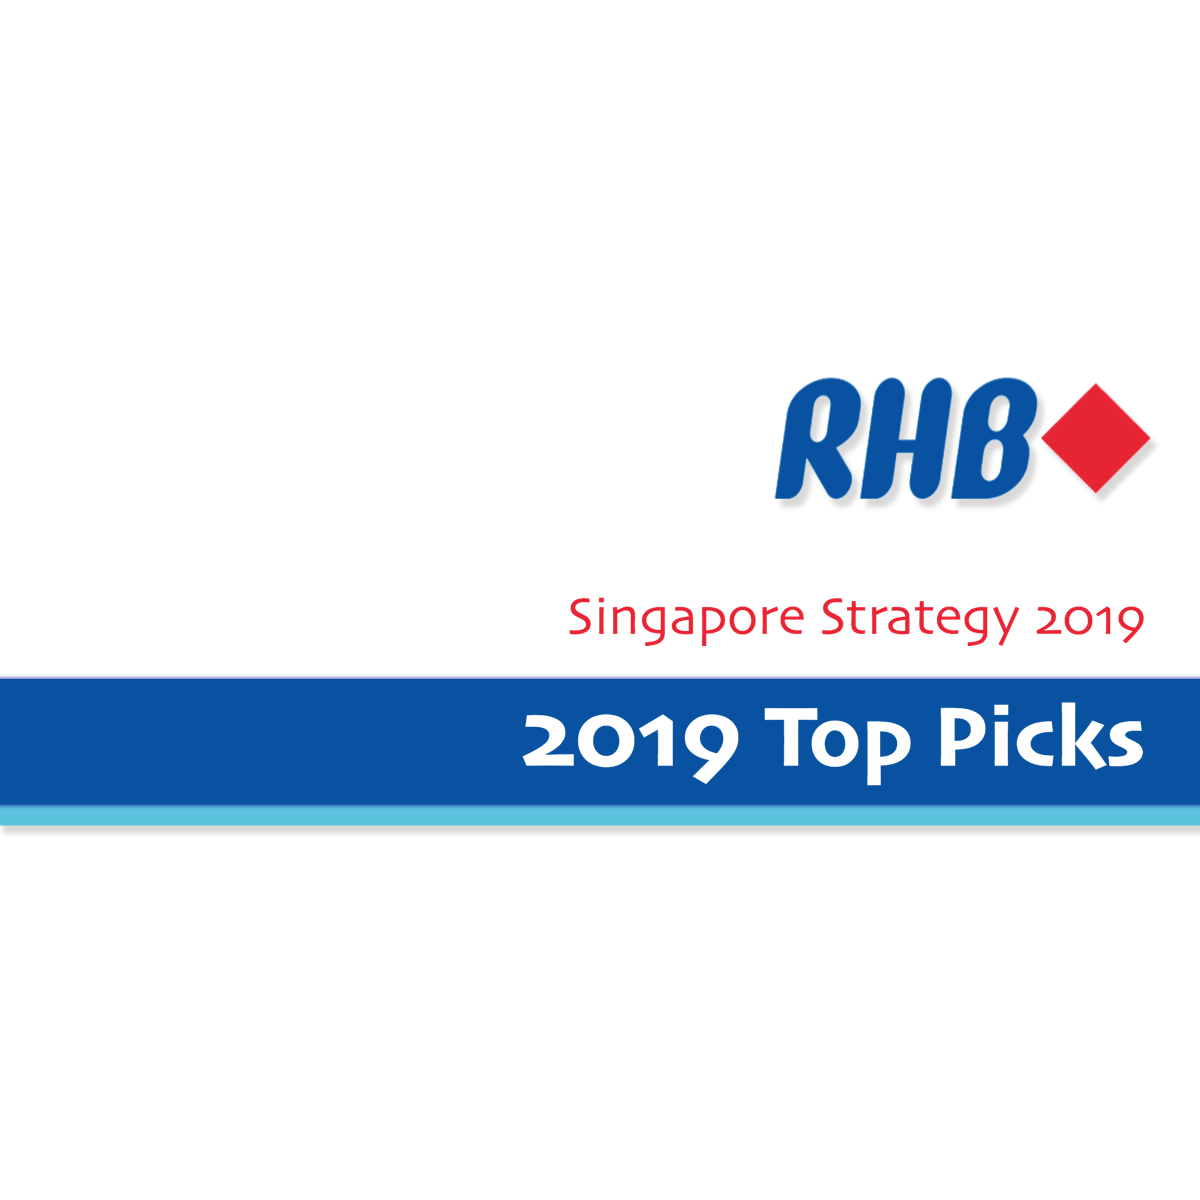 Singapore Stock Top Picks - RHB Investment Research | SGinvestors.io